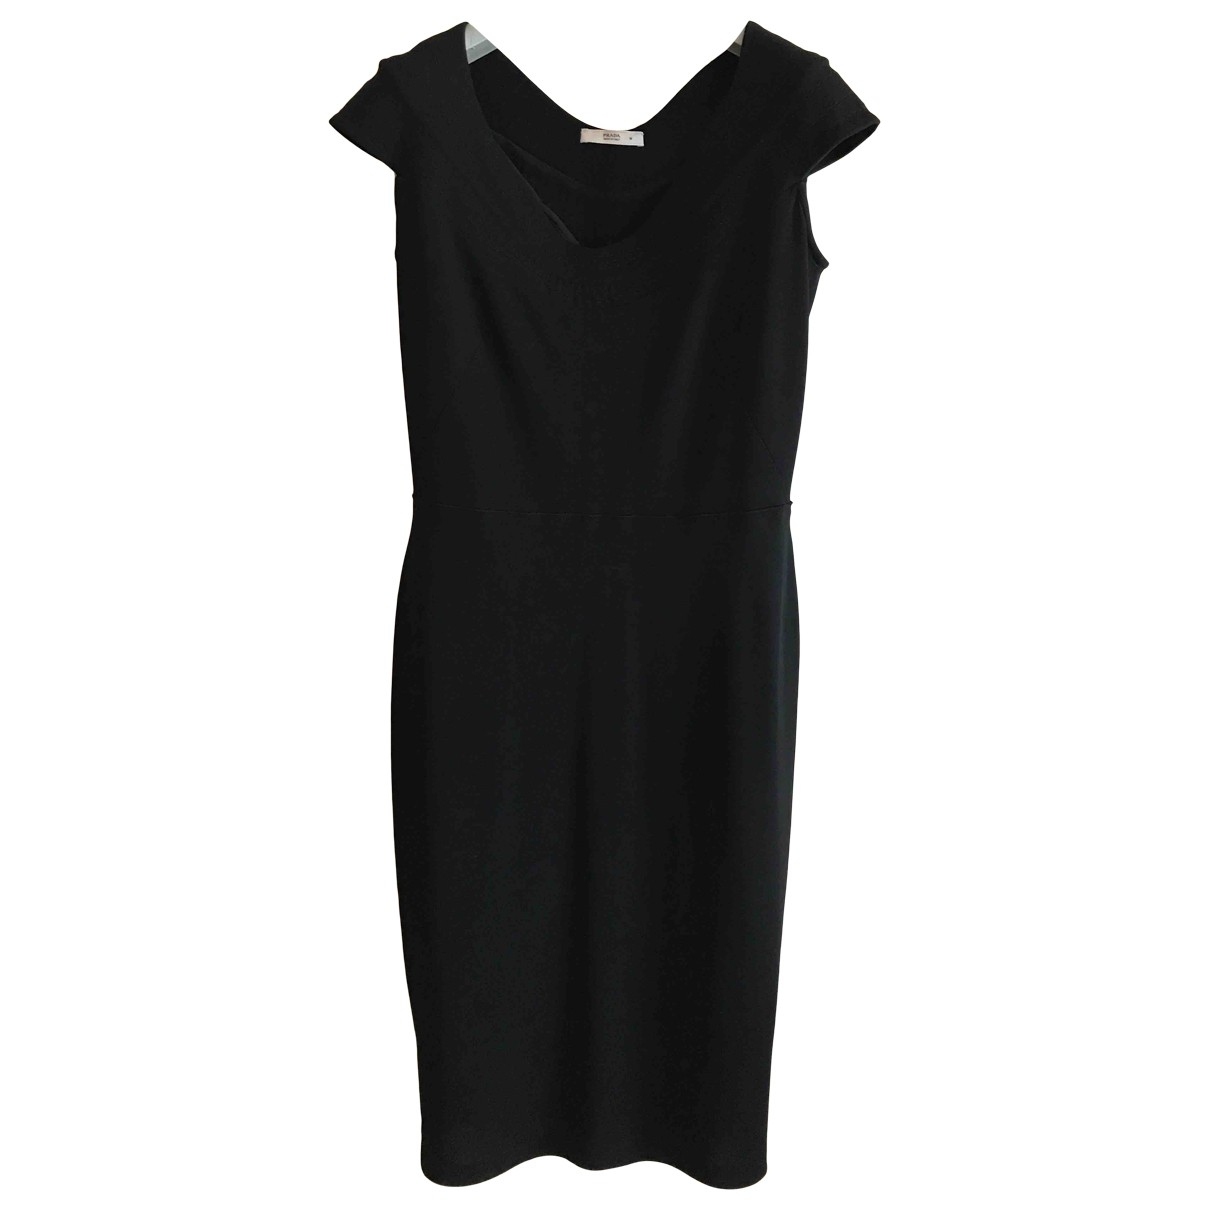 Prada \N Black dress for Women M International